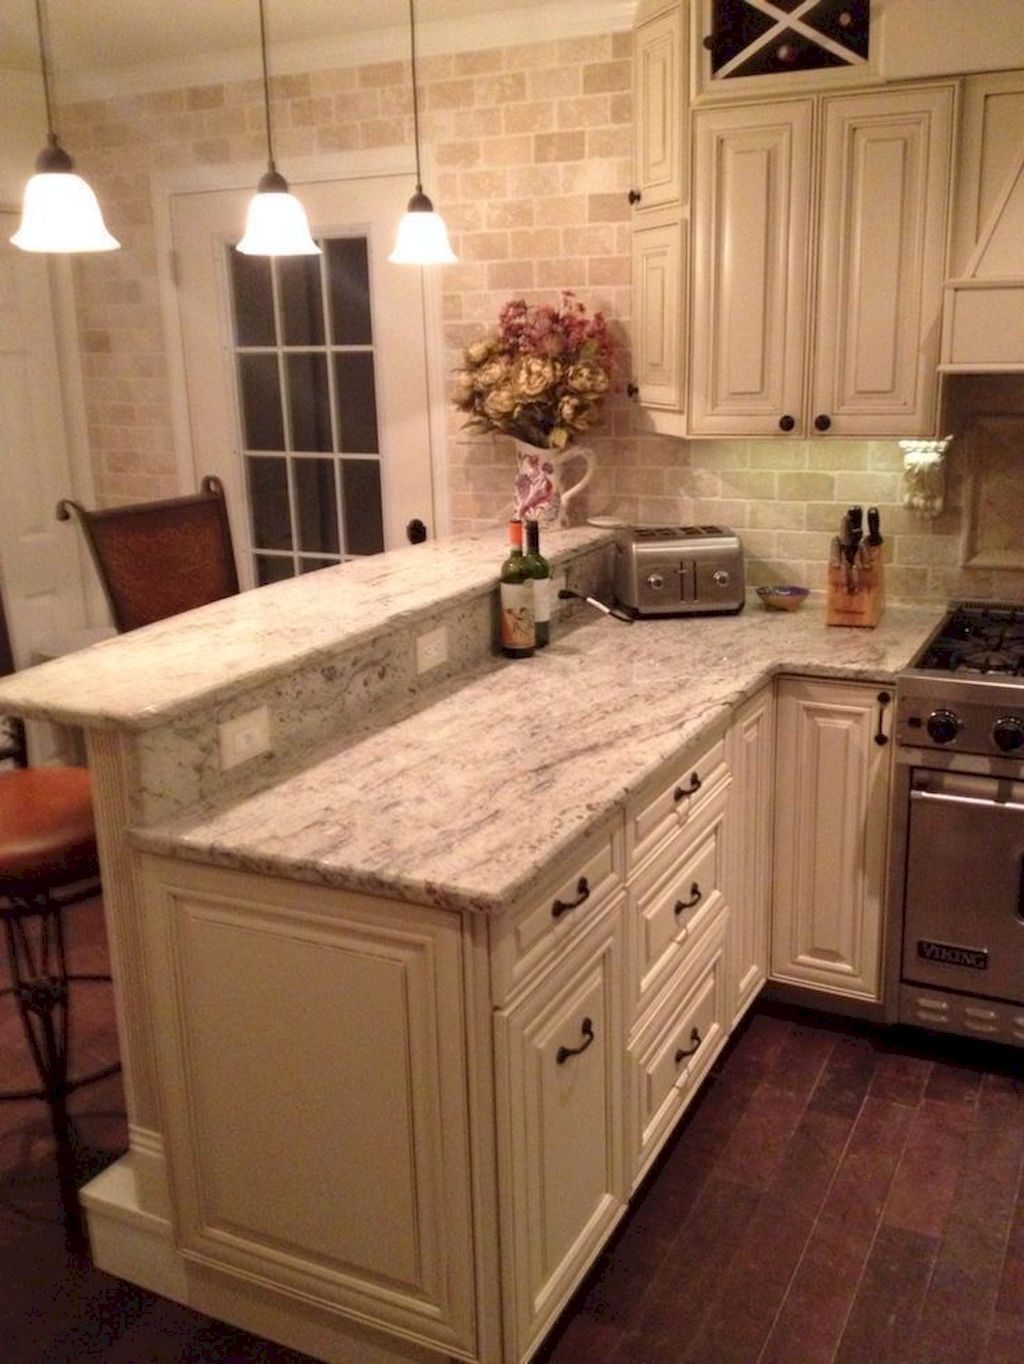 How To Keep Cats Off Kitchen Counters Kitchen Design Kitchen